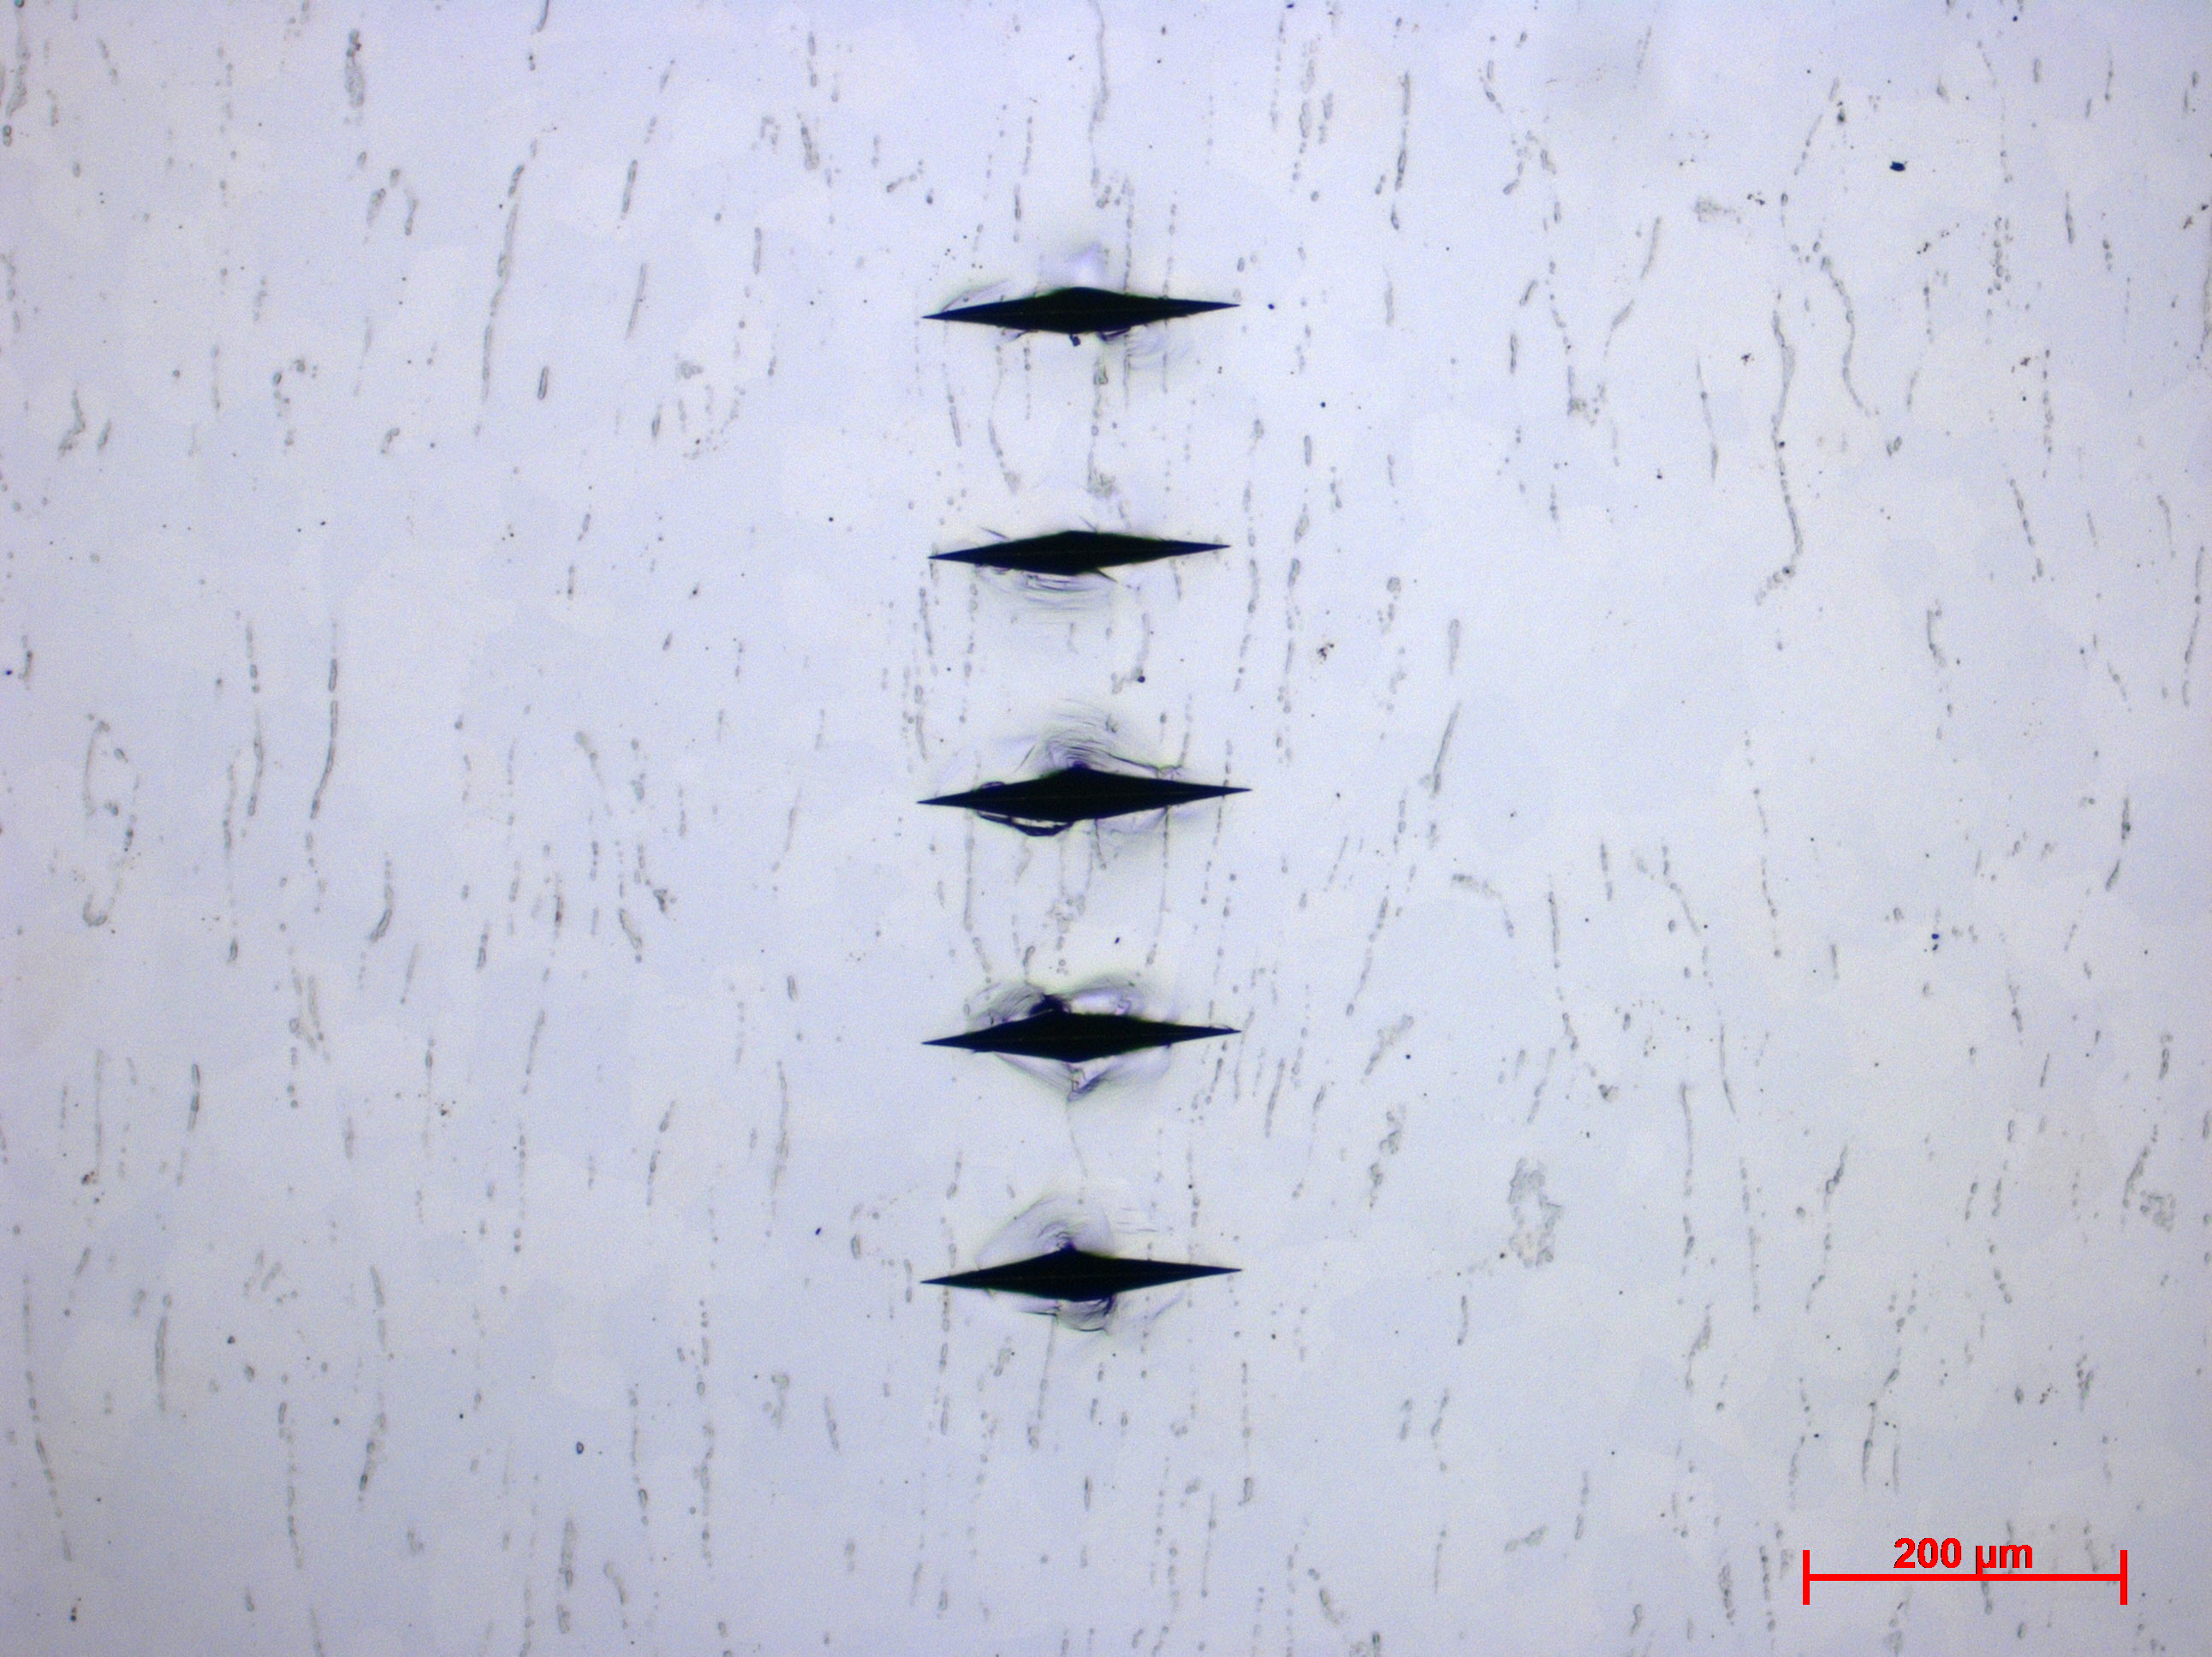 Titanium sample for metallurgical testing, with five knoop microhardness indentations.